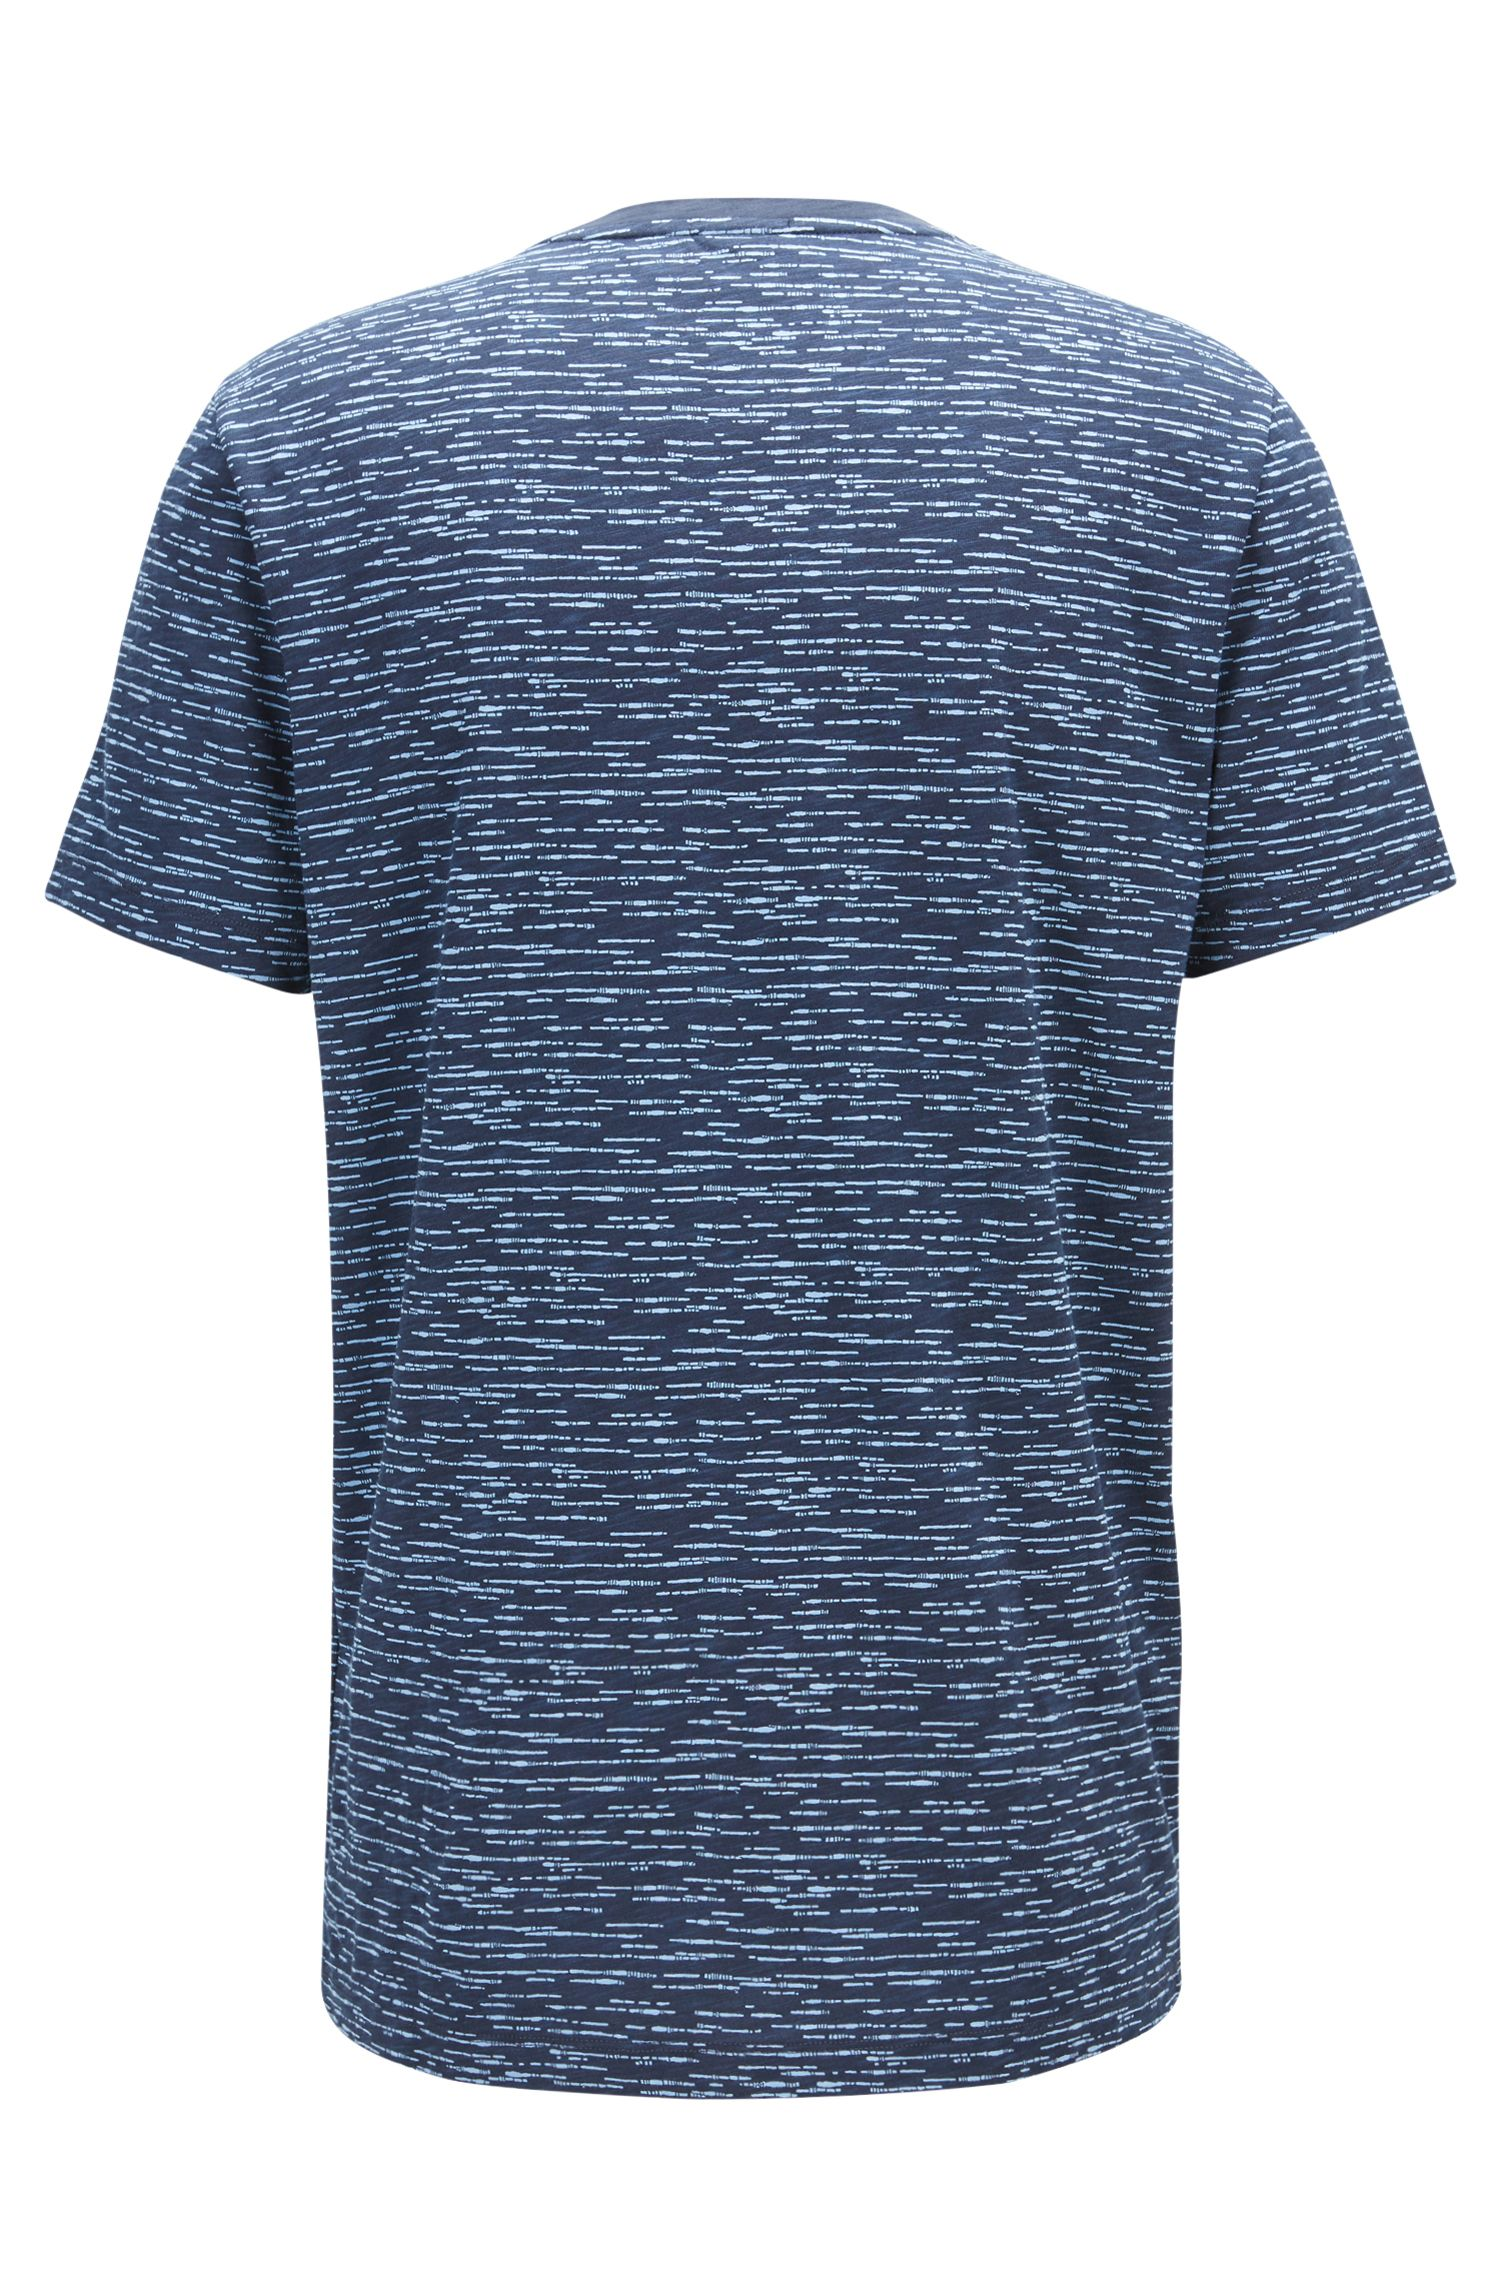 Heathered Cotton T-Shirt | Tiburt, Dark Blue